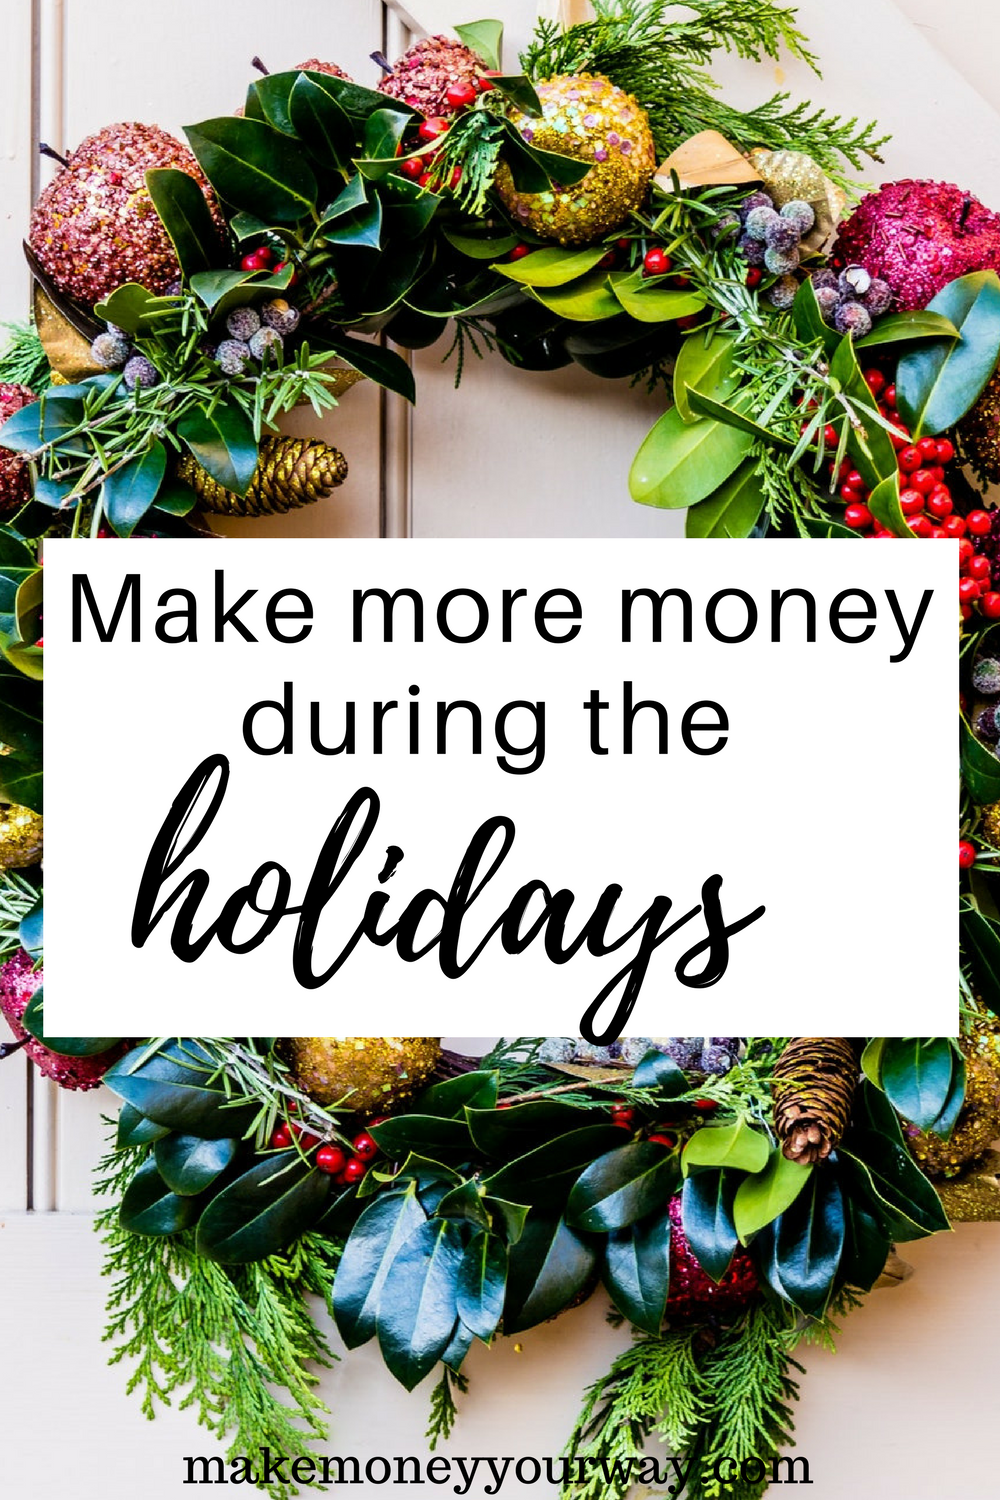 Make more money during the holidays